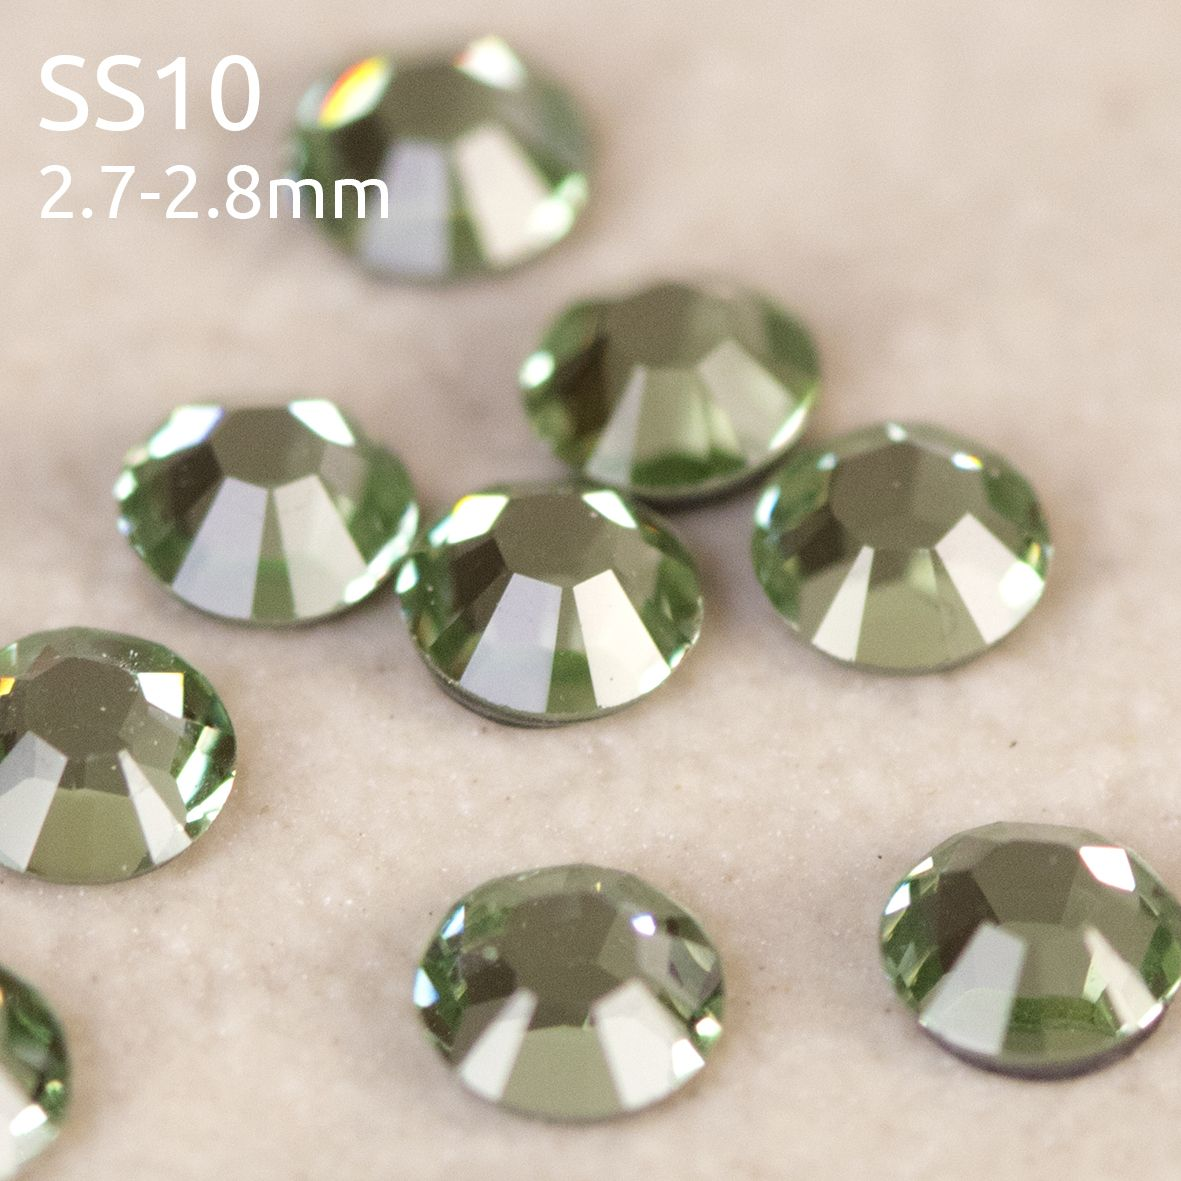 Swarovski ® Flatback Hot Fix SS10 (2.8mm) Crystals, Style 2028/2038 Xilion Rose Cut category image